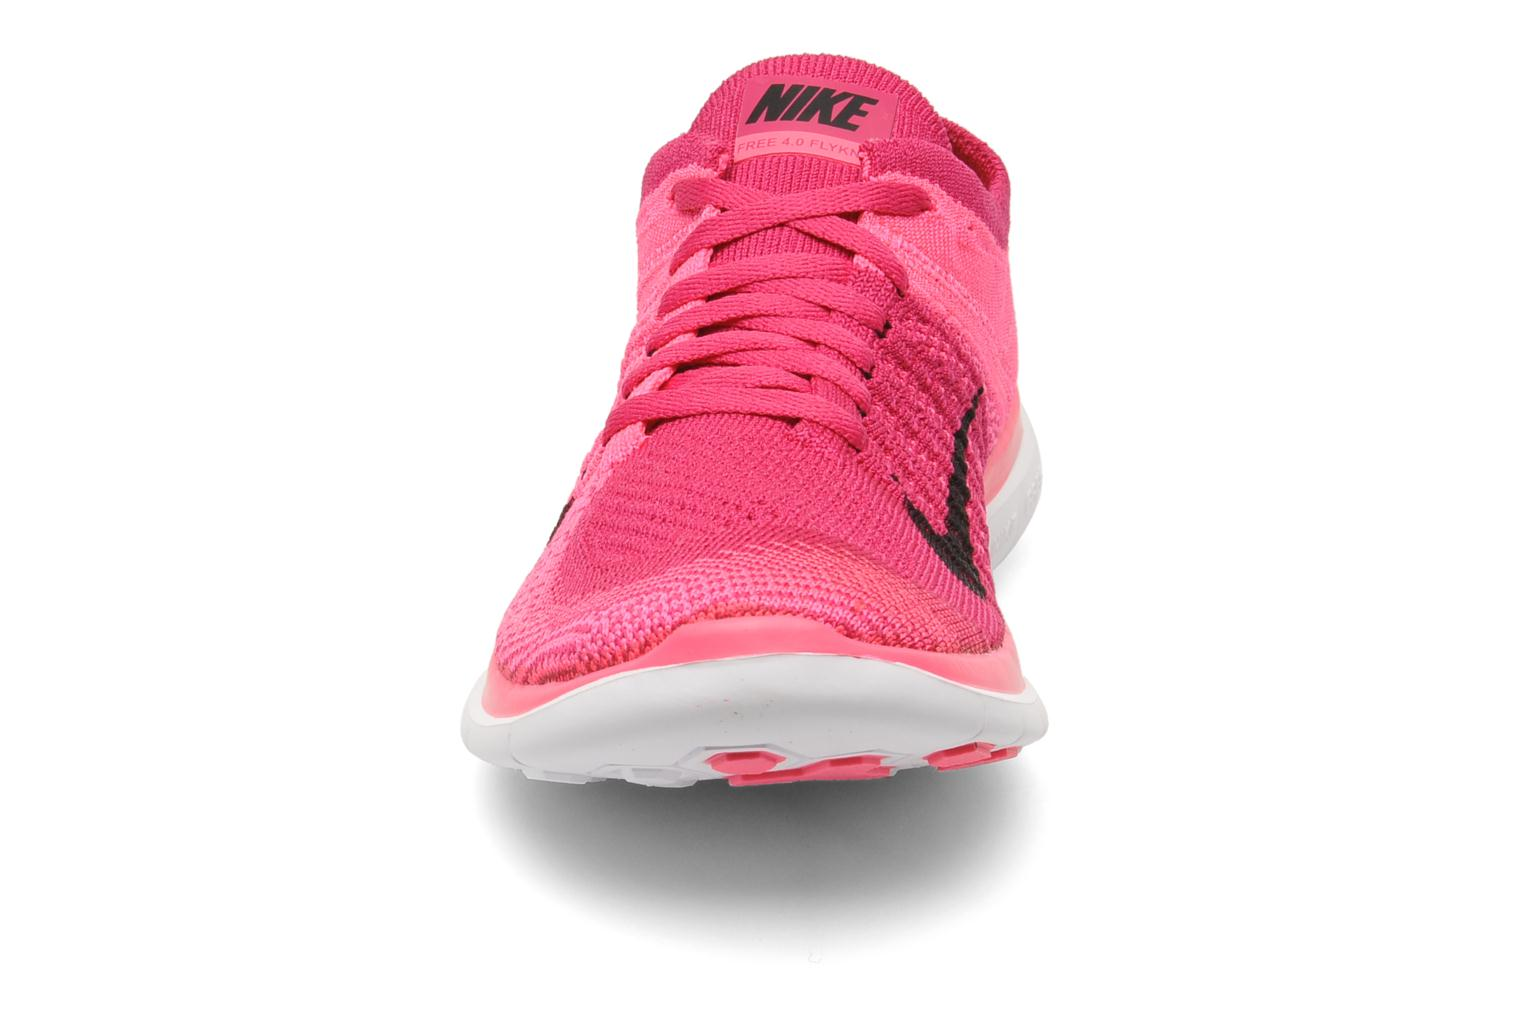 nike free flyknit rosa. Black Bedroom Furniture Sets. Home Design Ideas